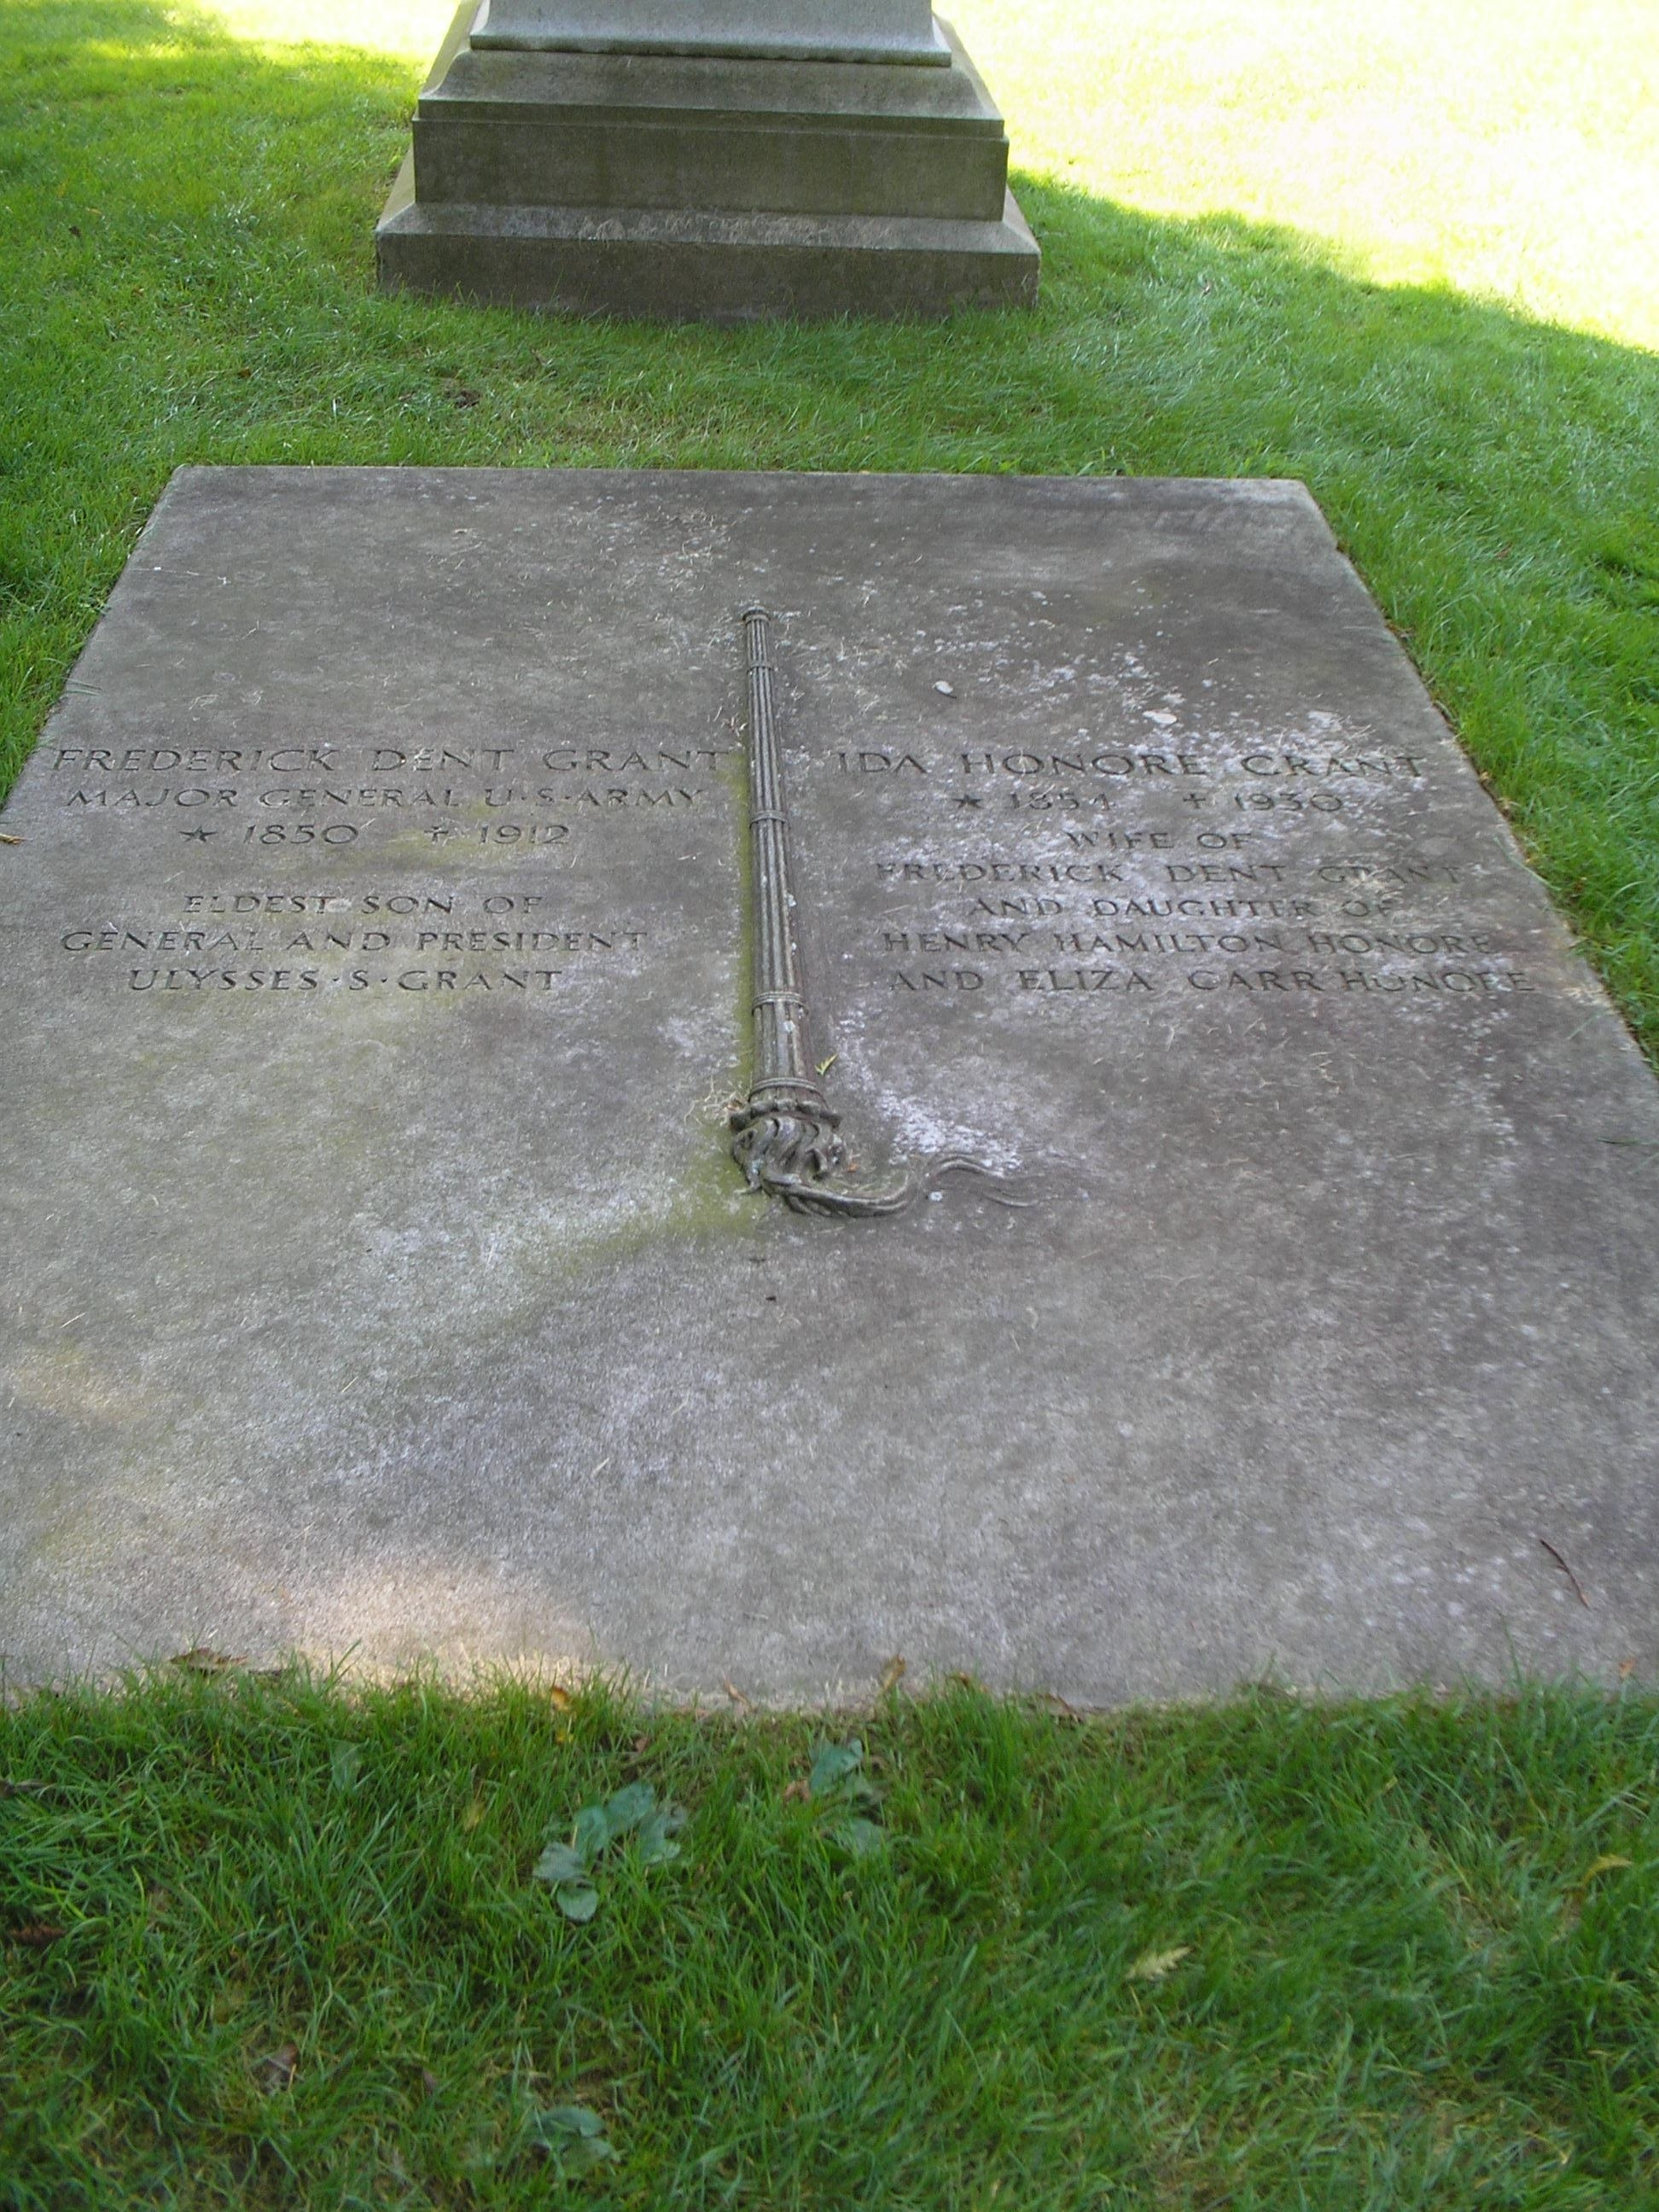 Grave of Frederick and Ida Grant